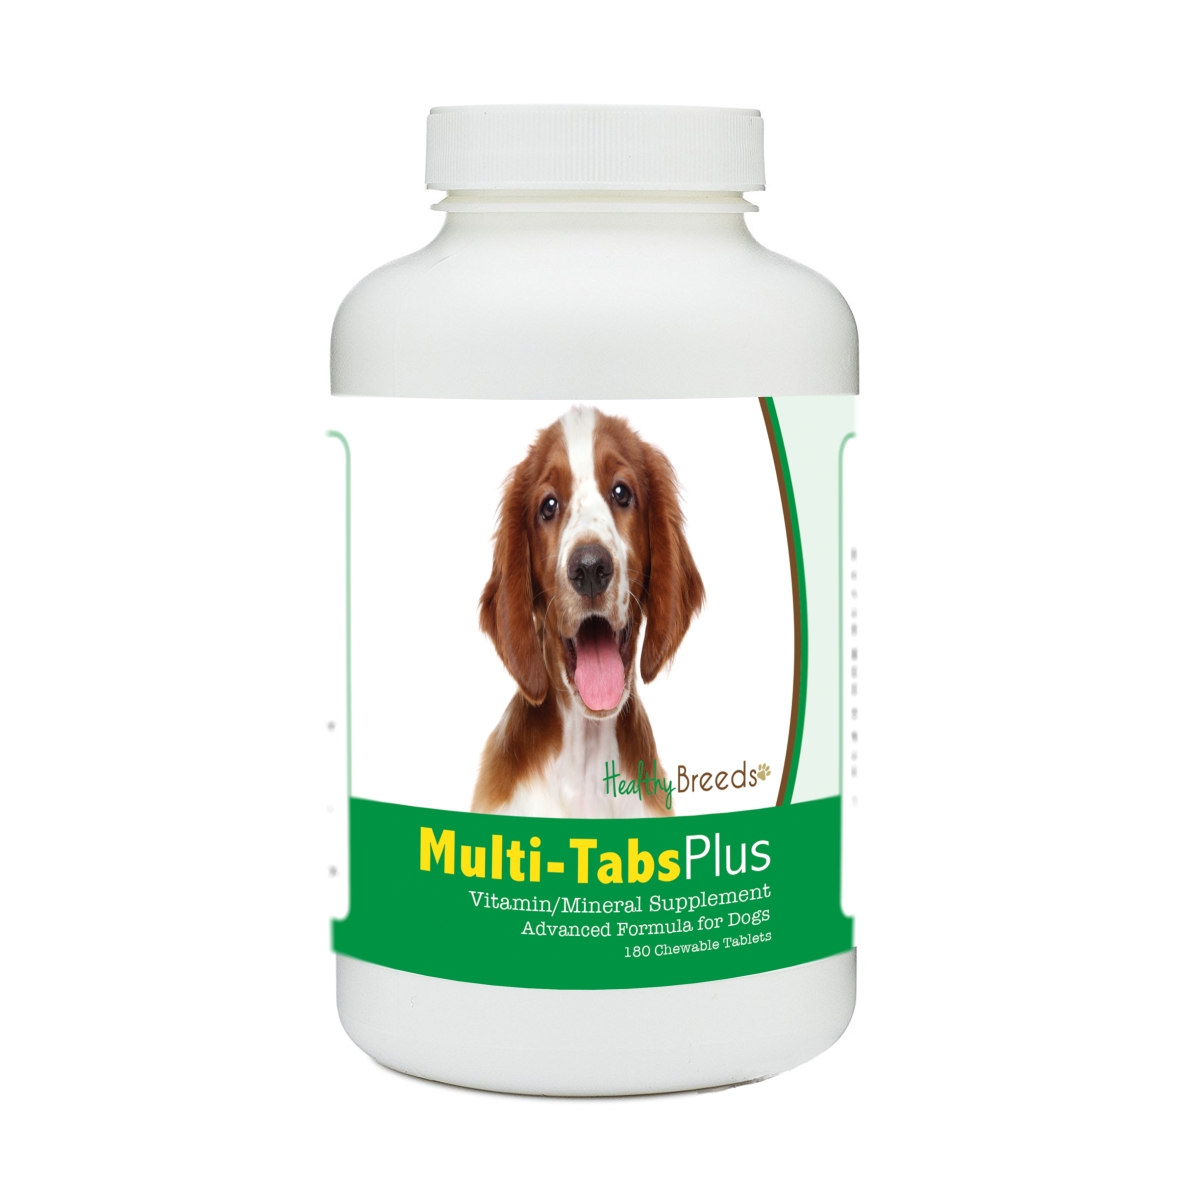 Healthy Breeds 840235177456 Welsh Springer Spaniel Multi-Tabs Plus Chewable Tablets - 180 Count